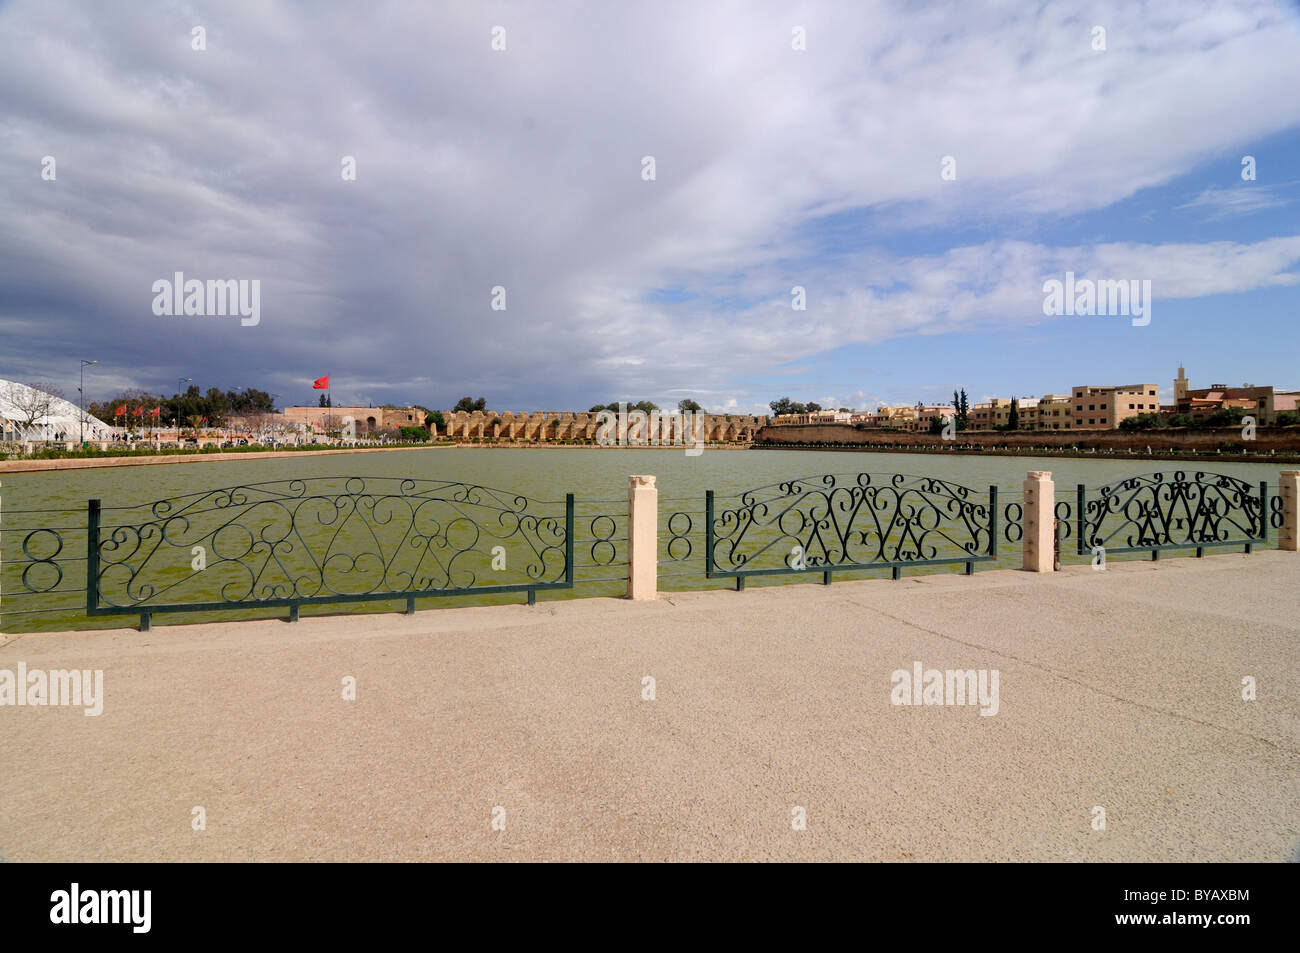 The Meknes Agdal basin, Morocco, Africa Stock Photo